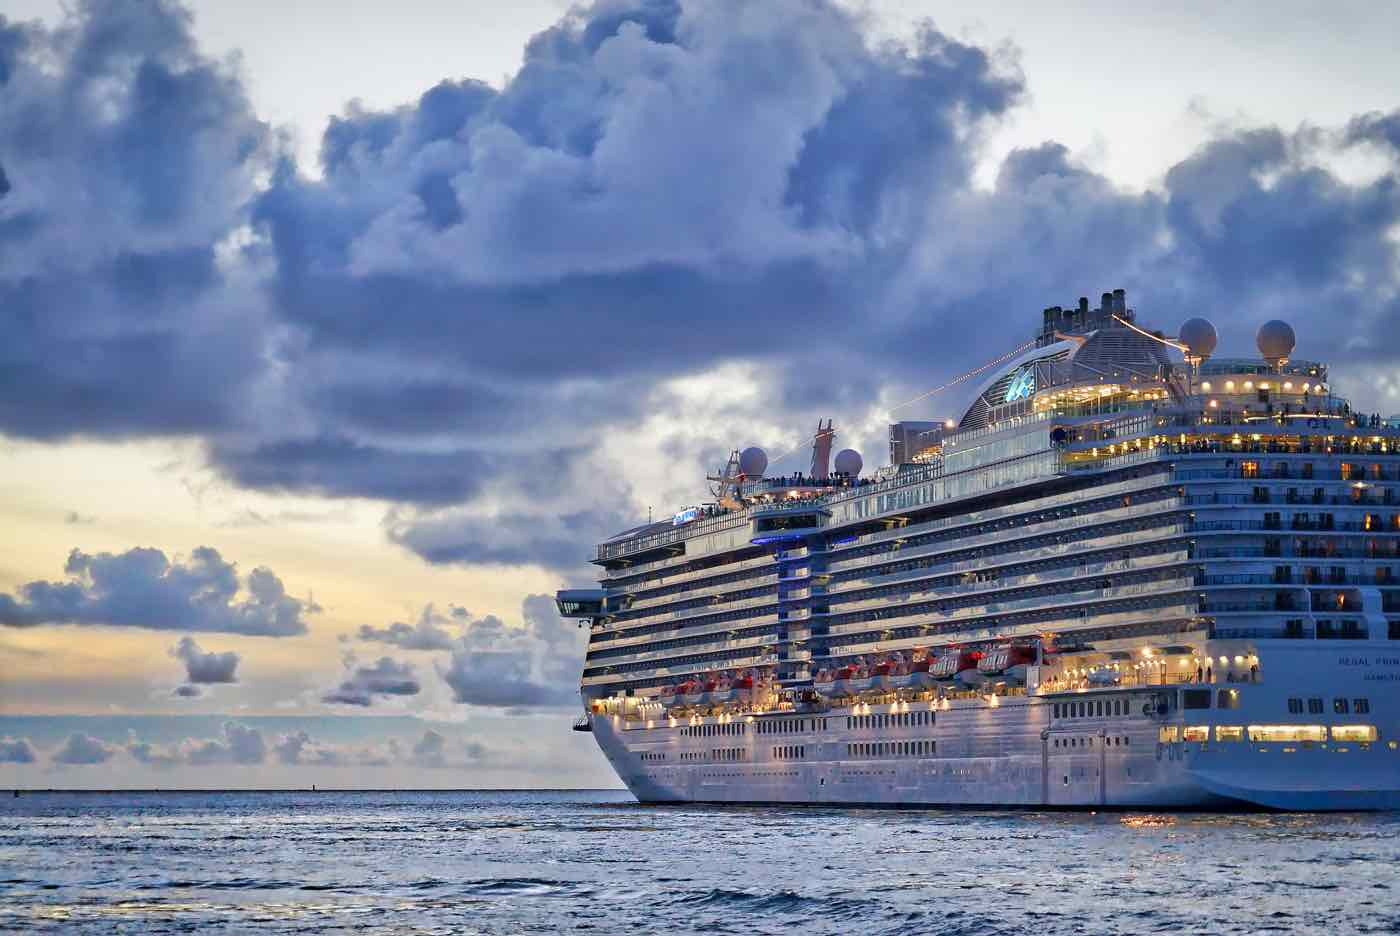 Cruise ship pollution clouds